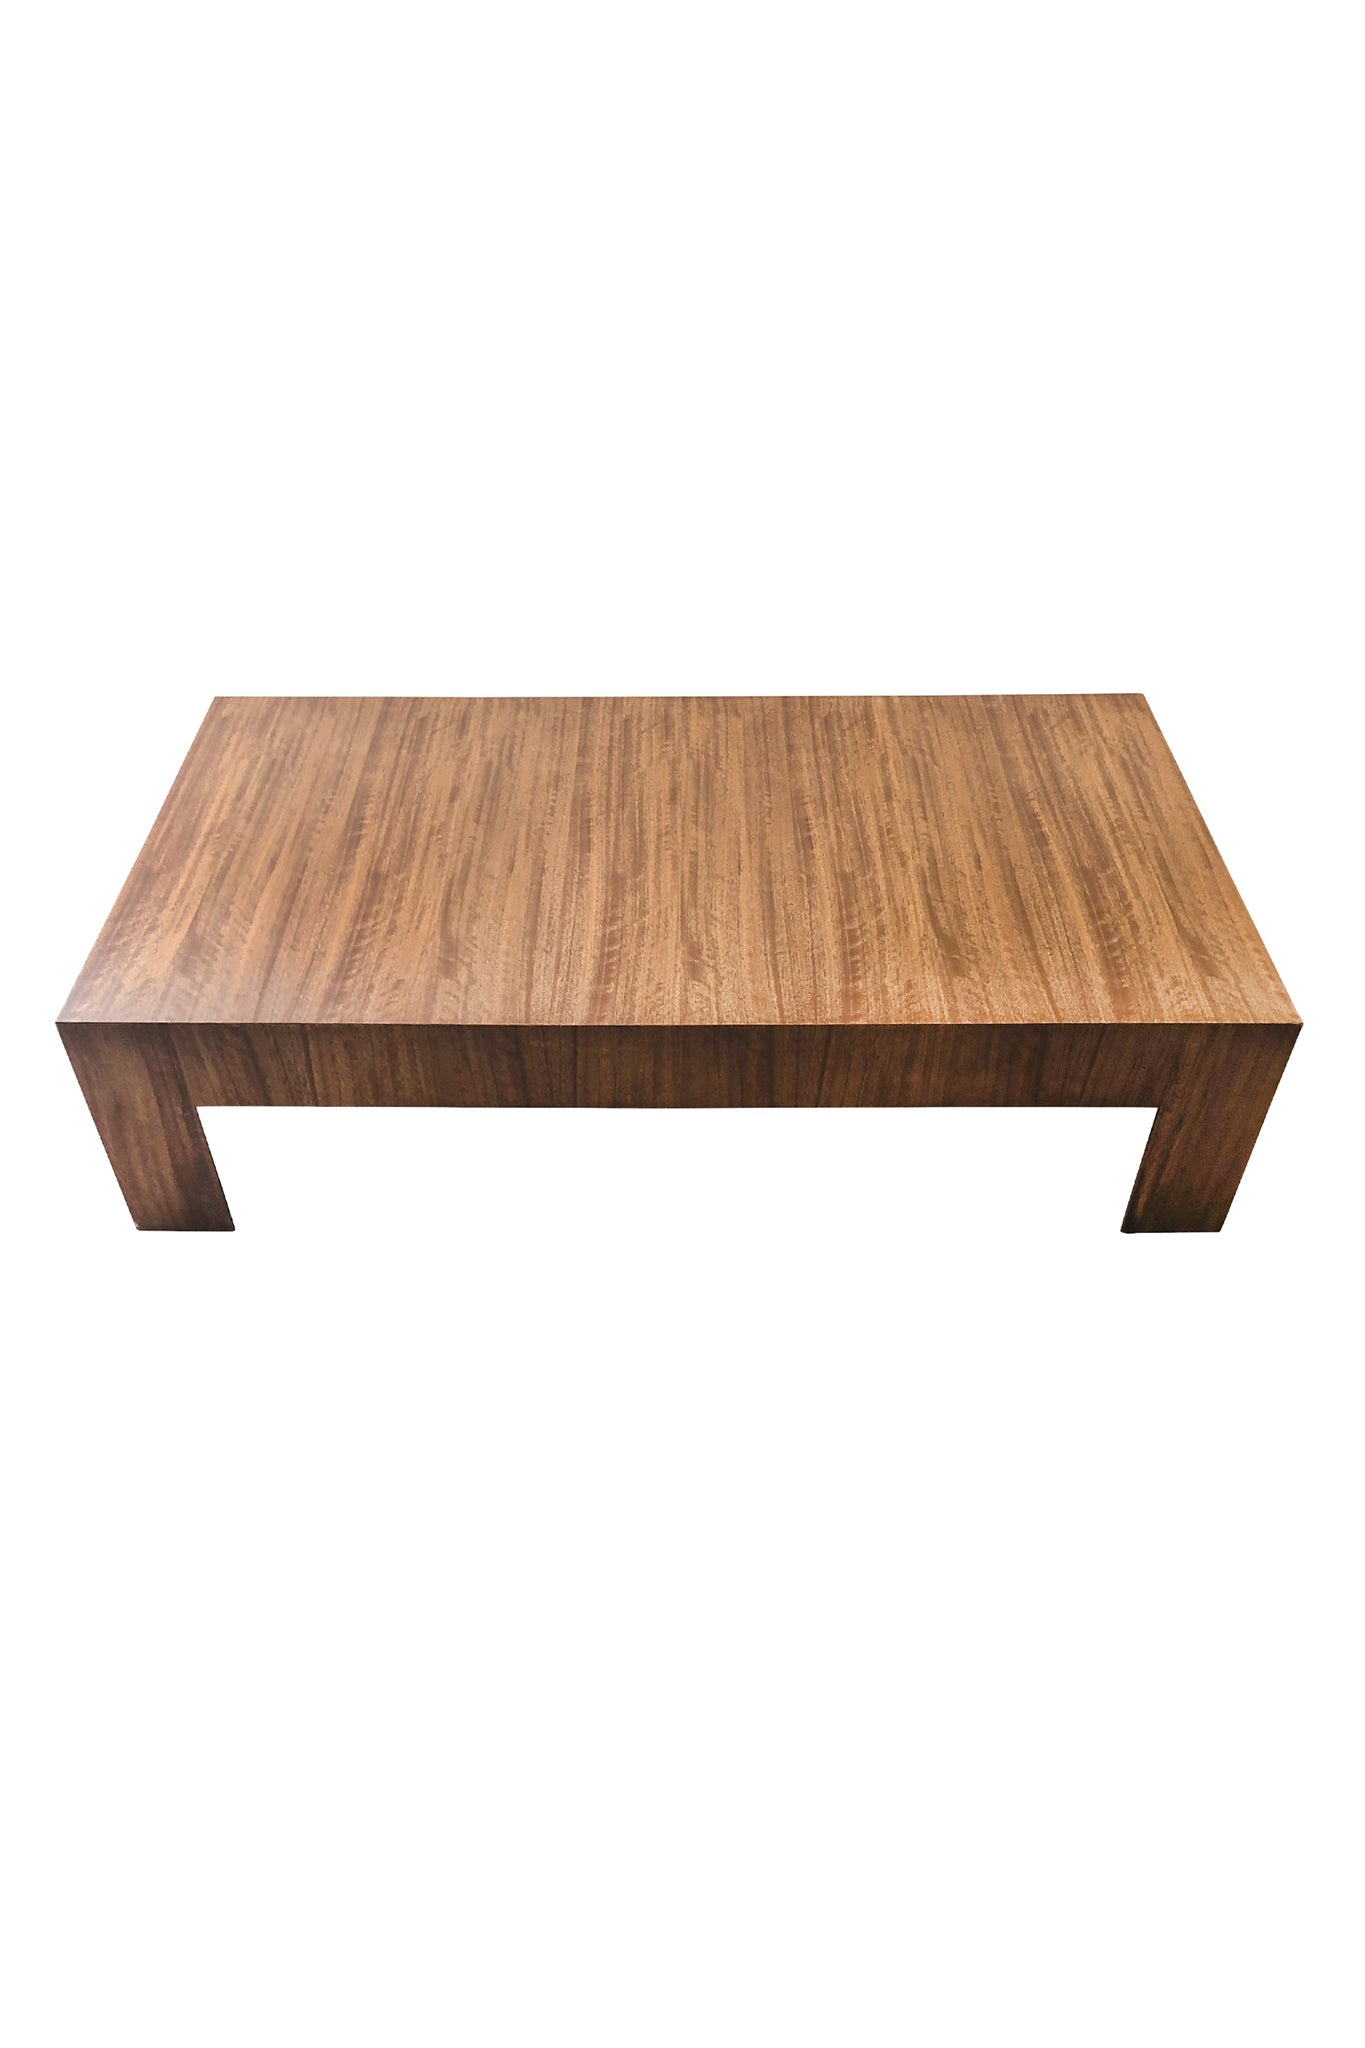 Refinished Mid Century Modern Coffee Table By Directional